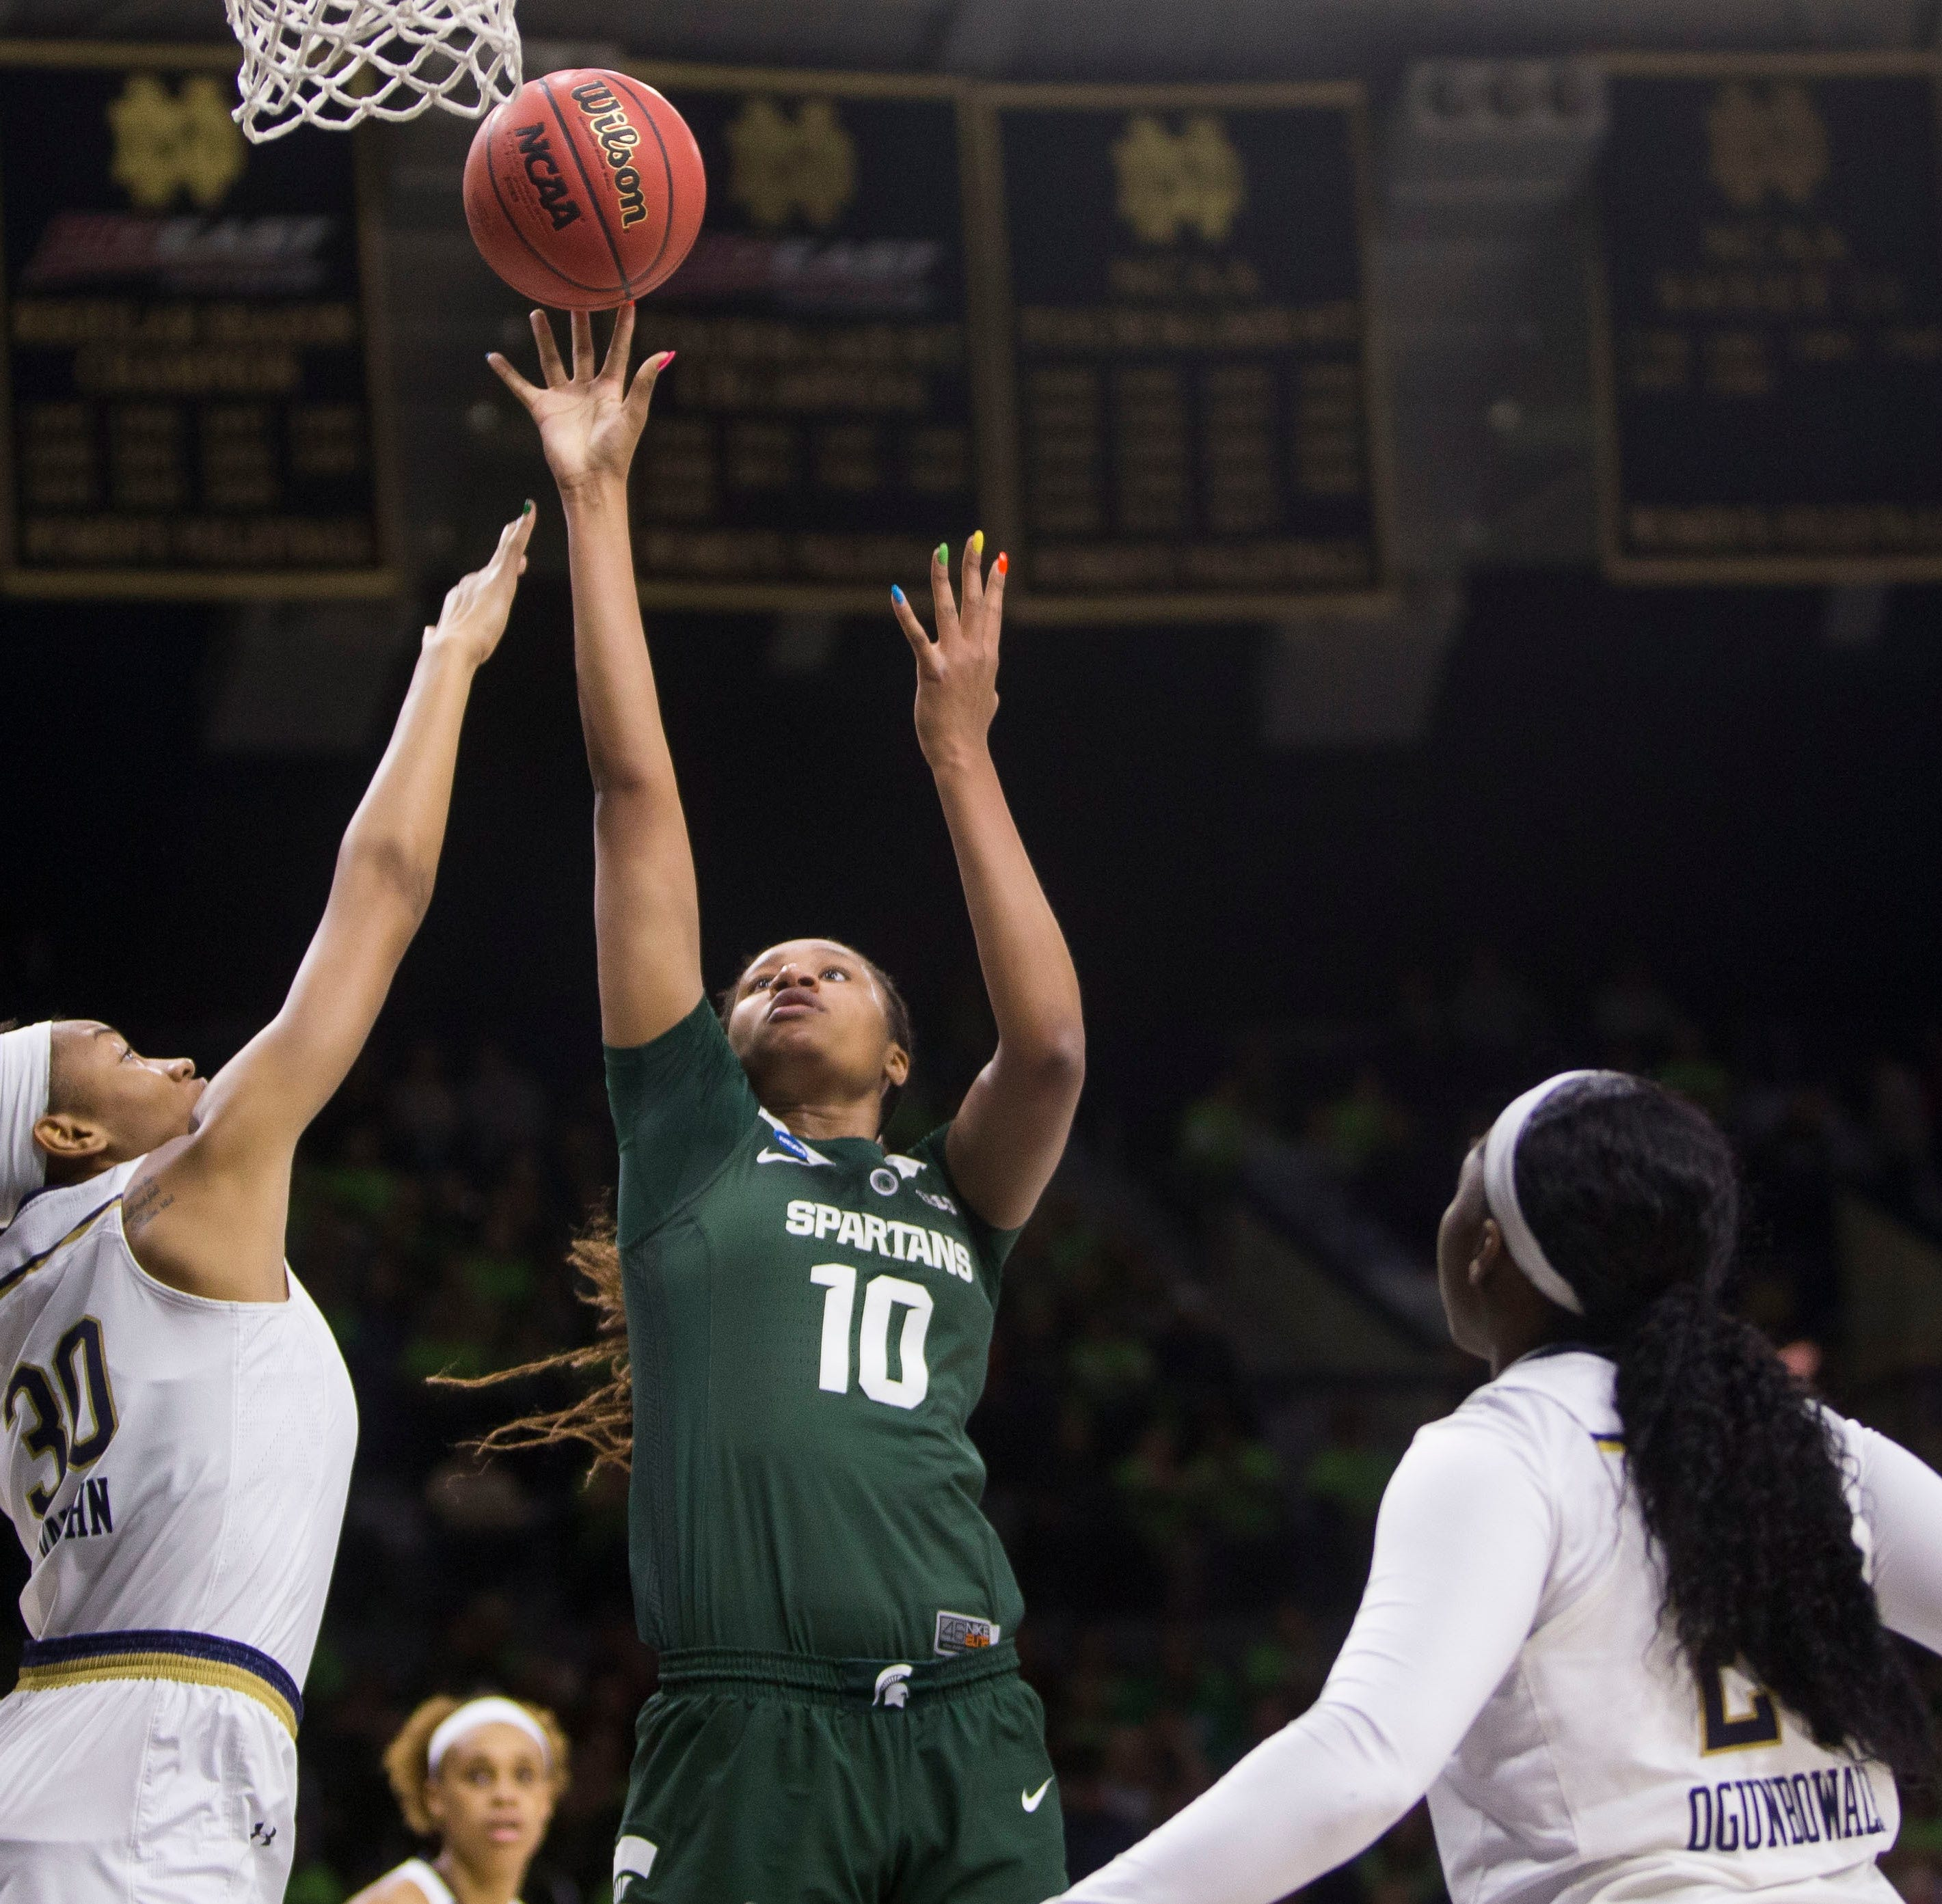 Sidney Cooks leaving Michigan State women's basketball program